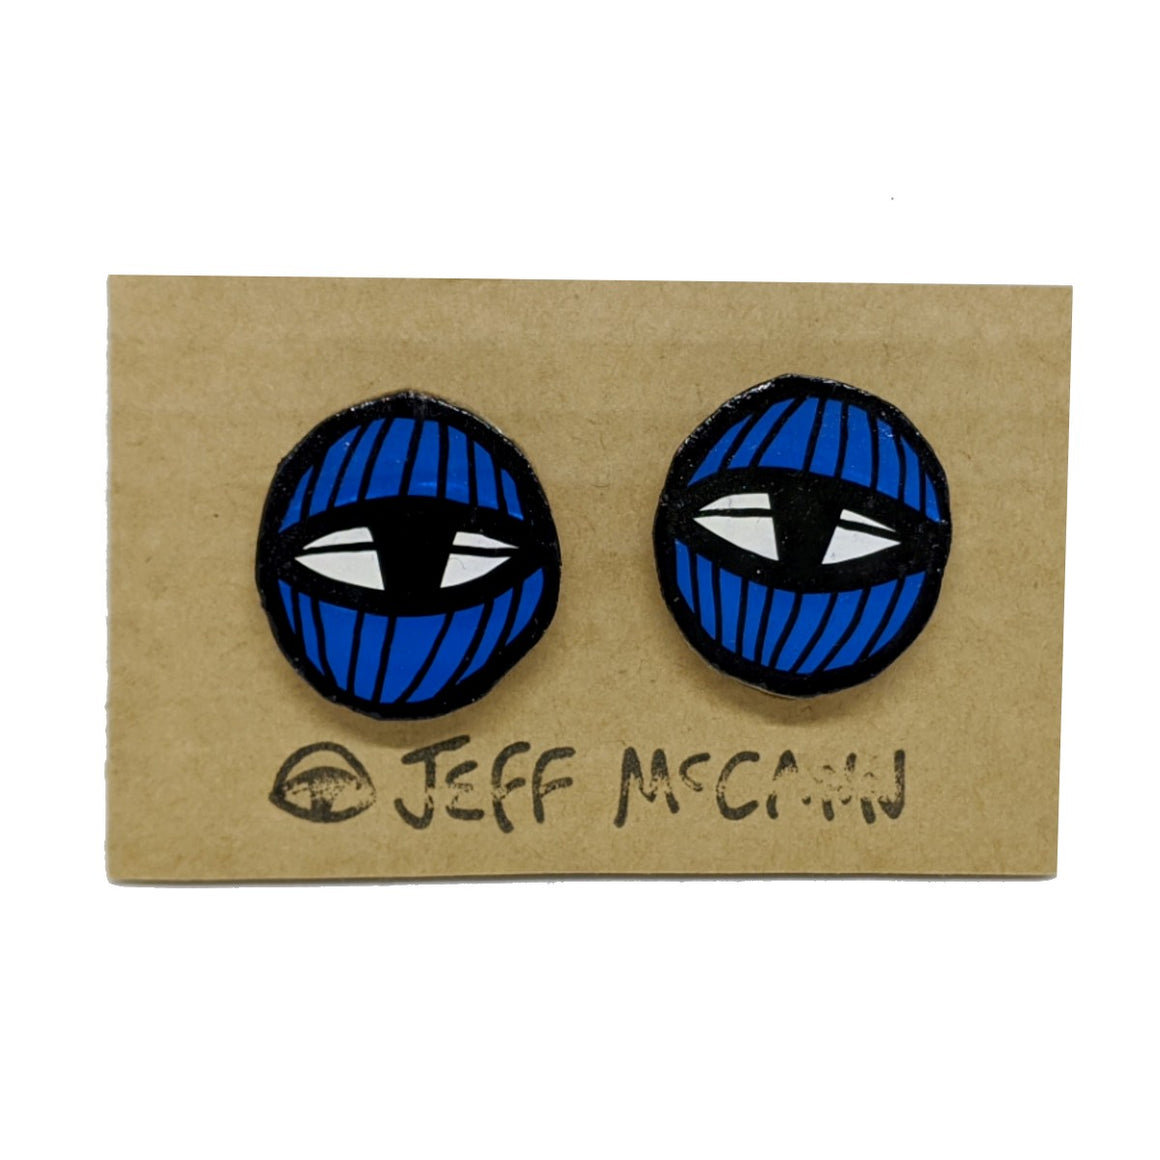 A Pair of stud Earrings made of hand painted cardboard. A geometric design in the shape of two eyes in blue and white.